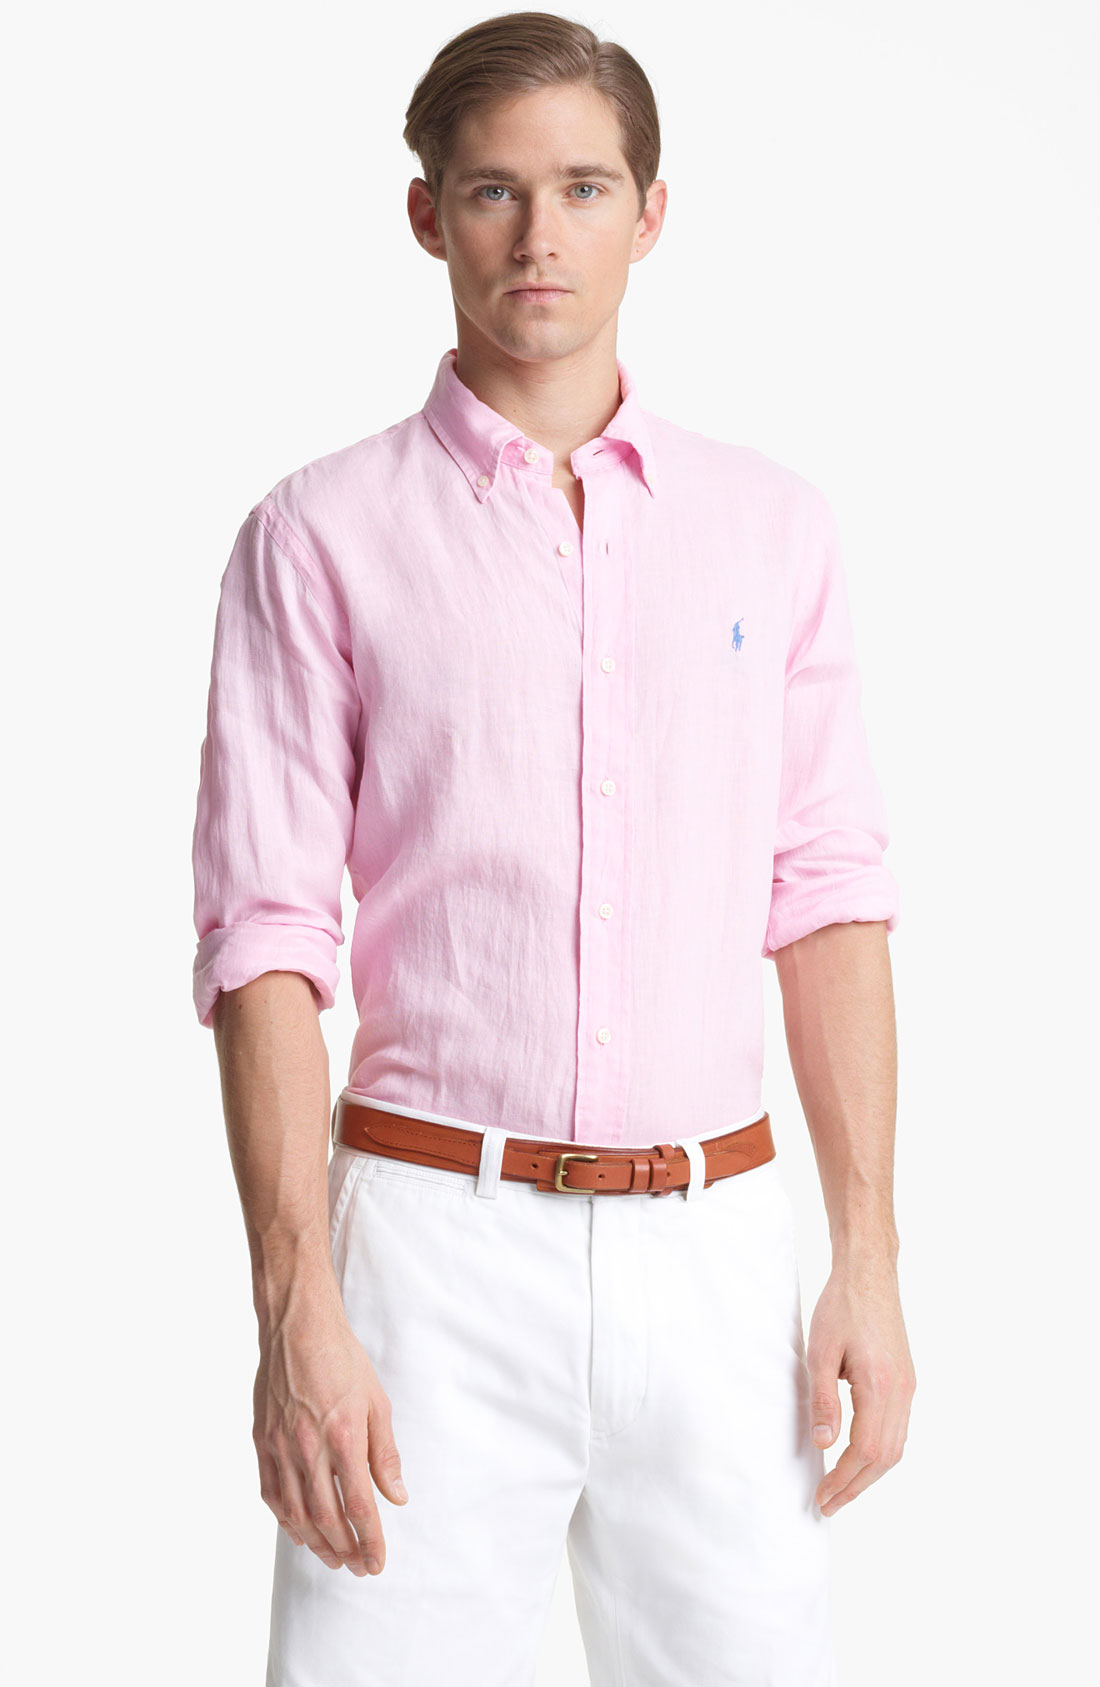 polo ralph lauren custom fit linen sport shirt in pink for. Black Bedroom Furniture Sets. Home Design Ideas